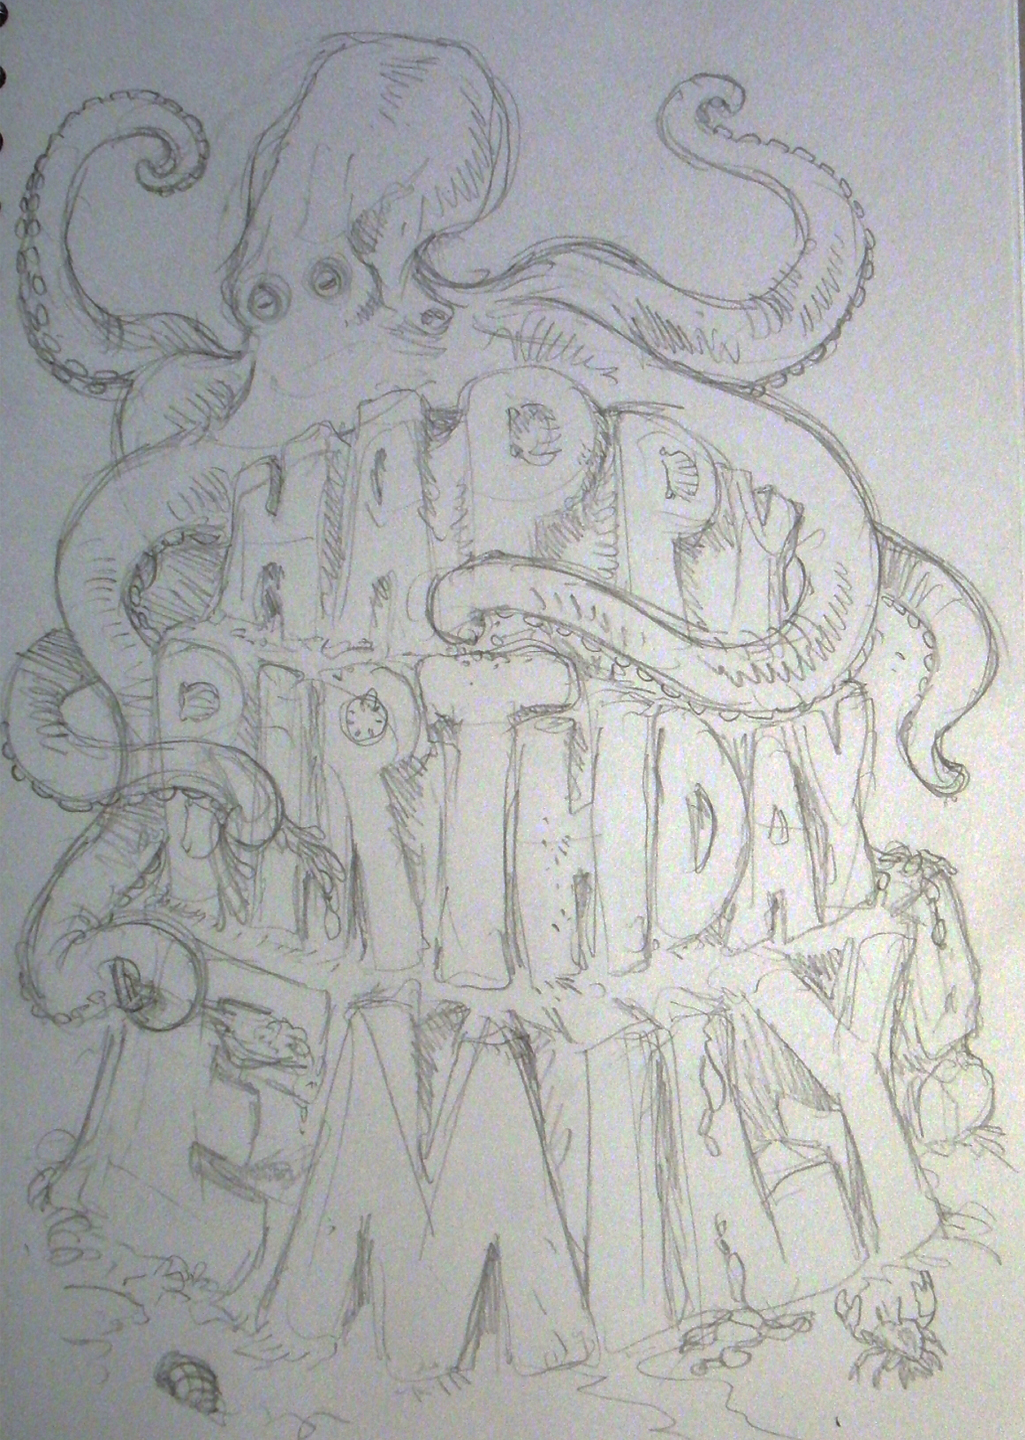 pencil drawing birthday cards ; Em%252527s+22nd+birthday+card+in+pencil+form+sm